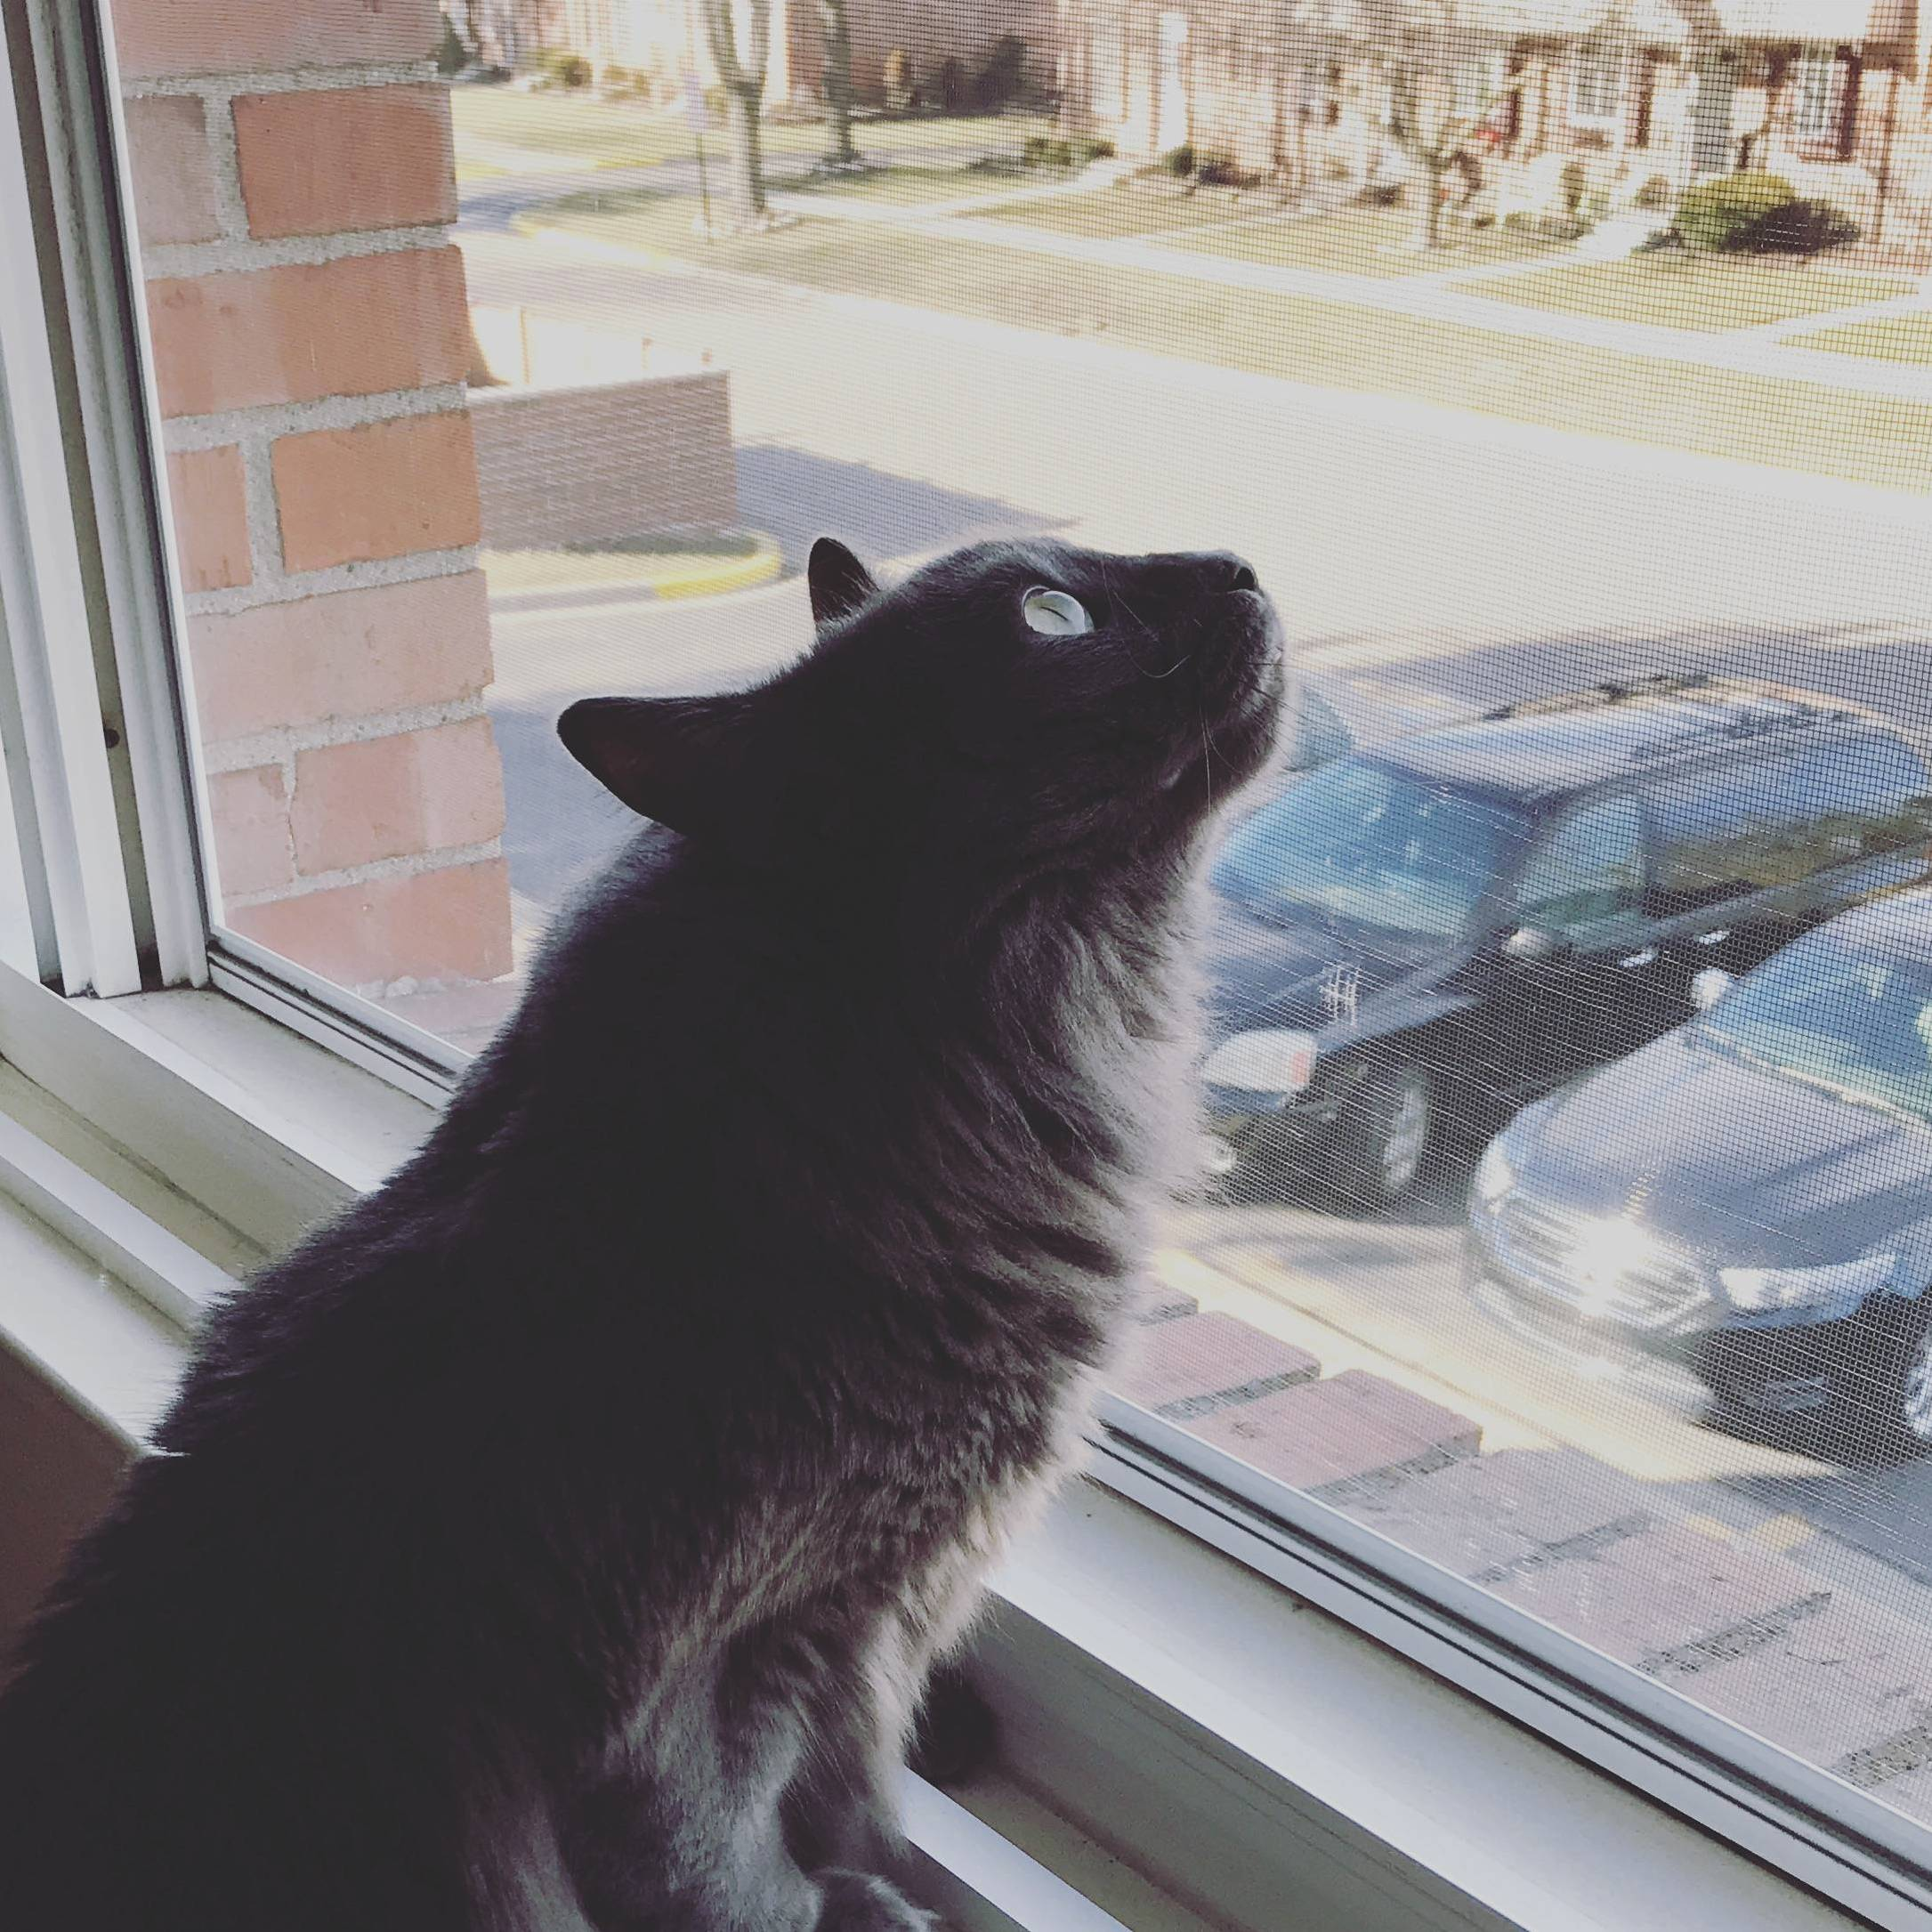 Grayson enjoying some birdwatching during the unseasonably warm weather